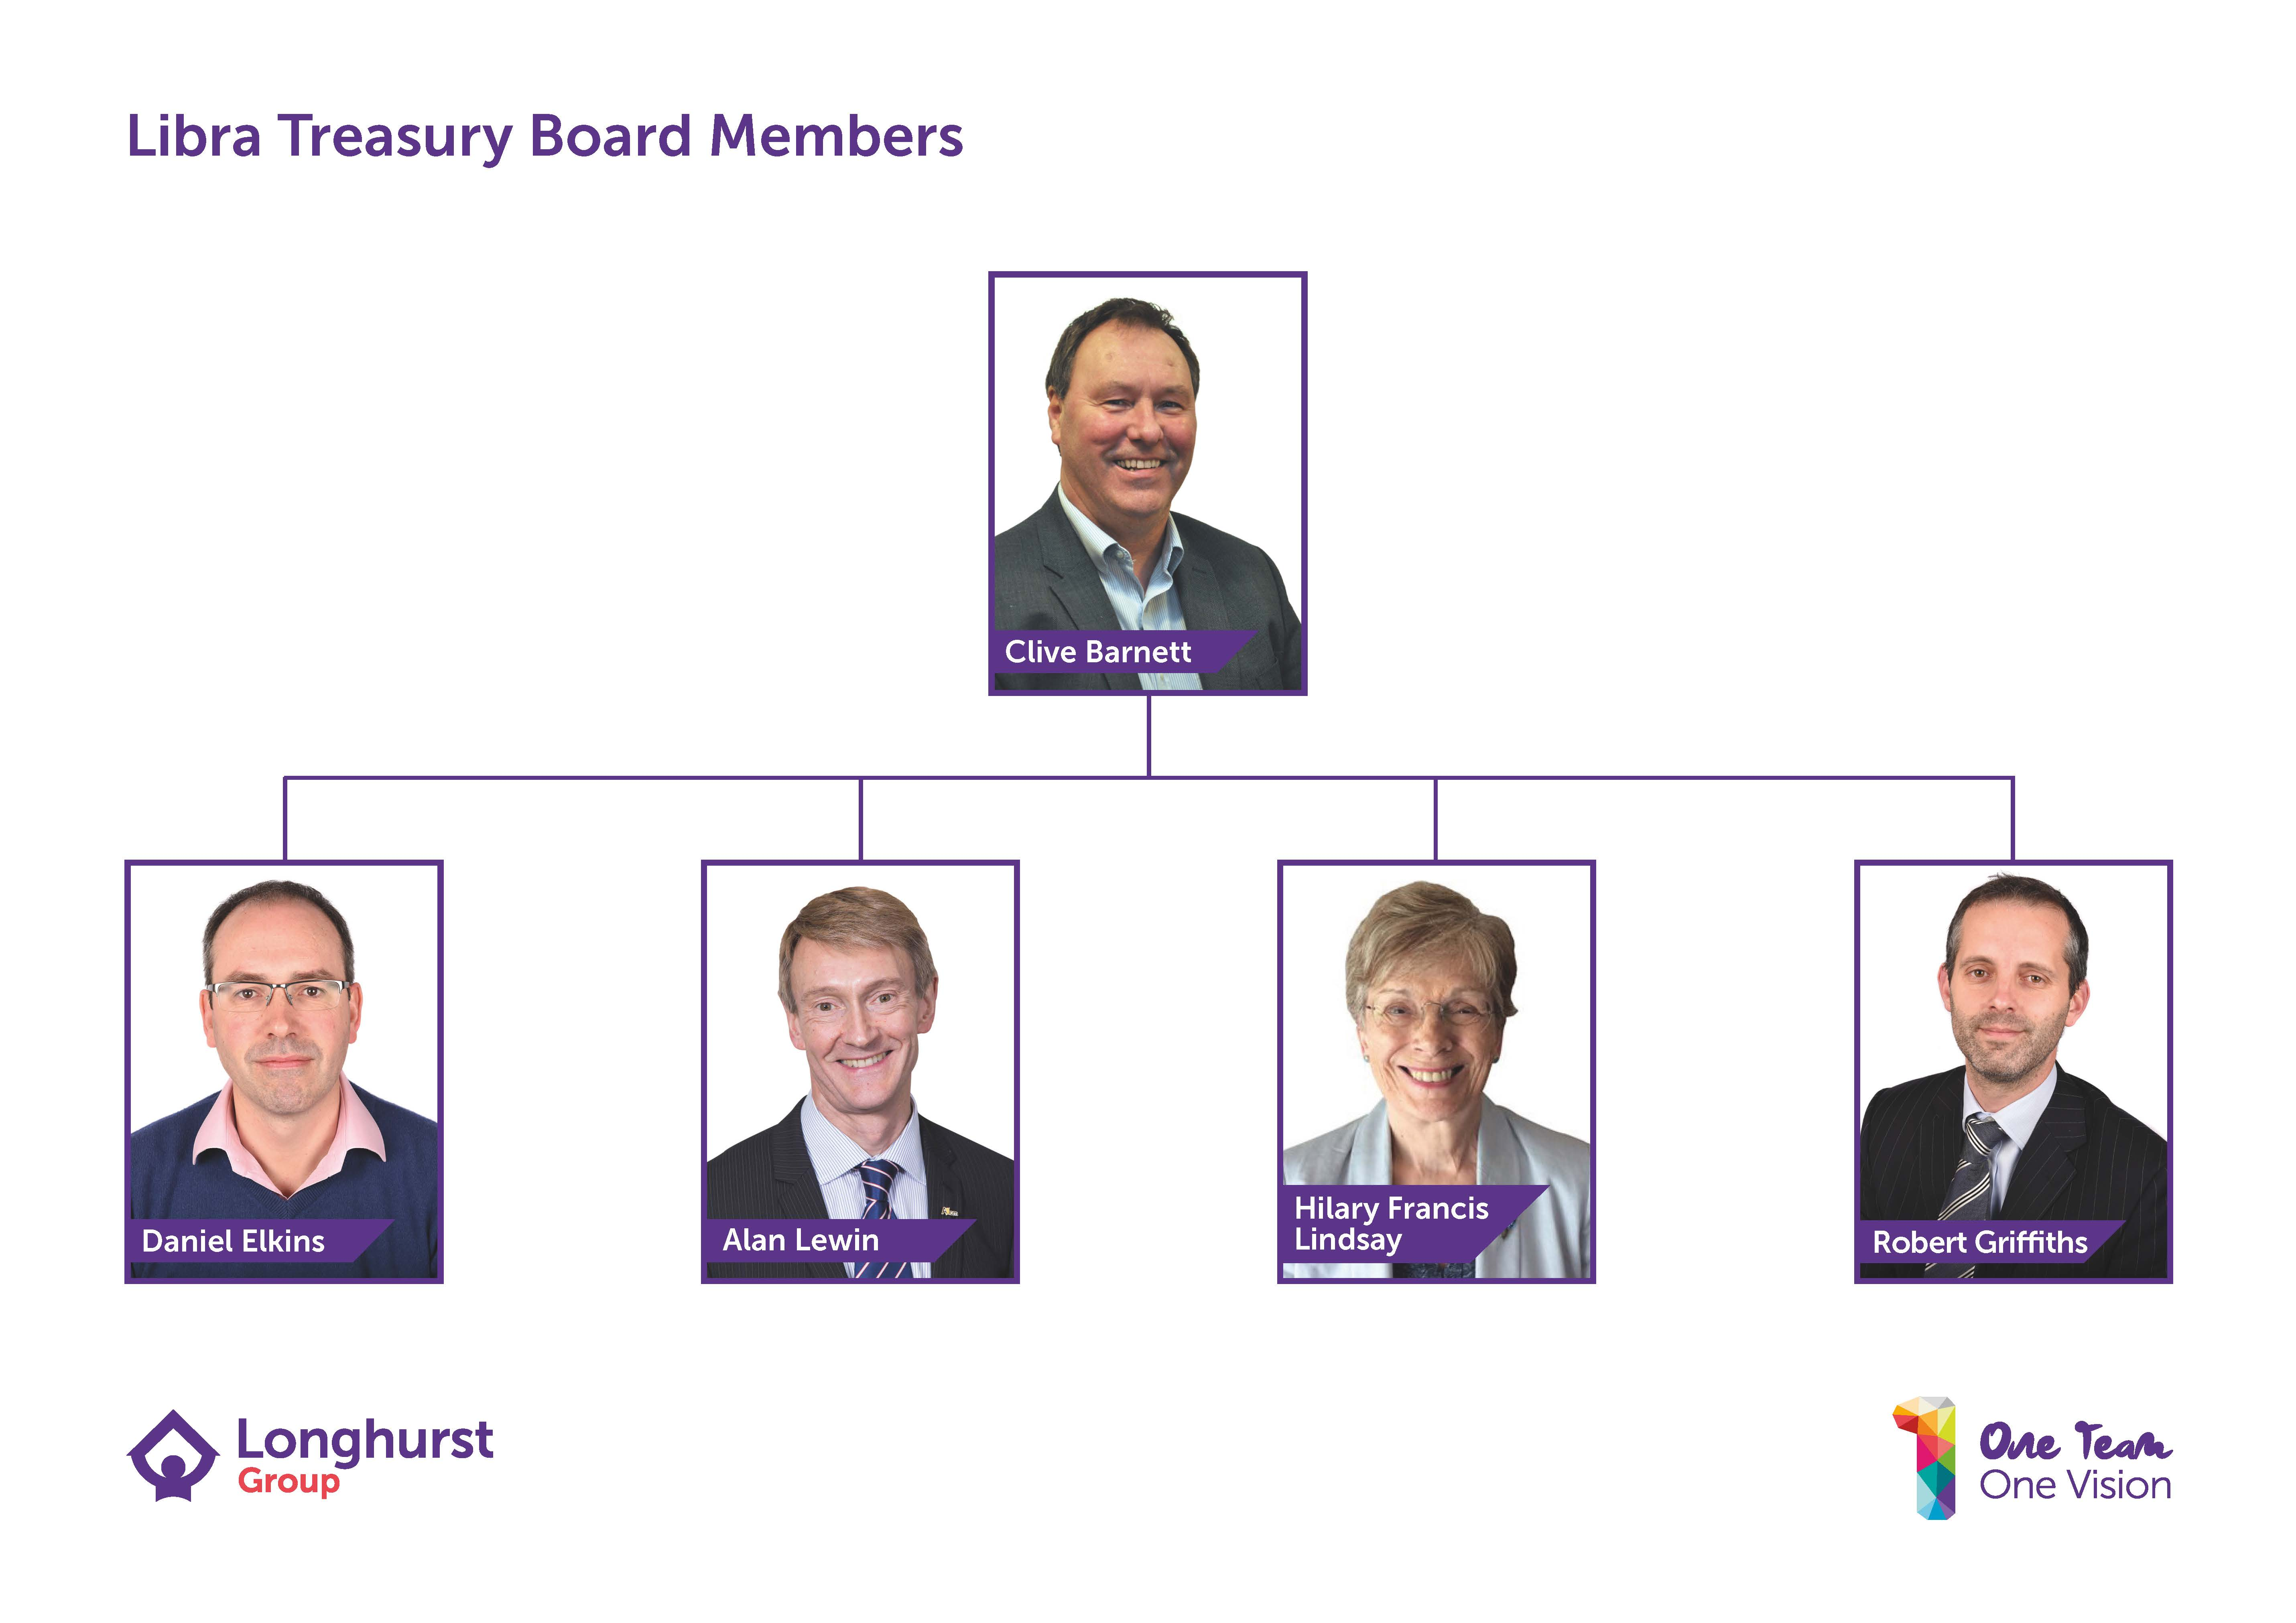 Libra Treasury Board Members Structure